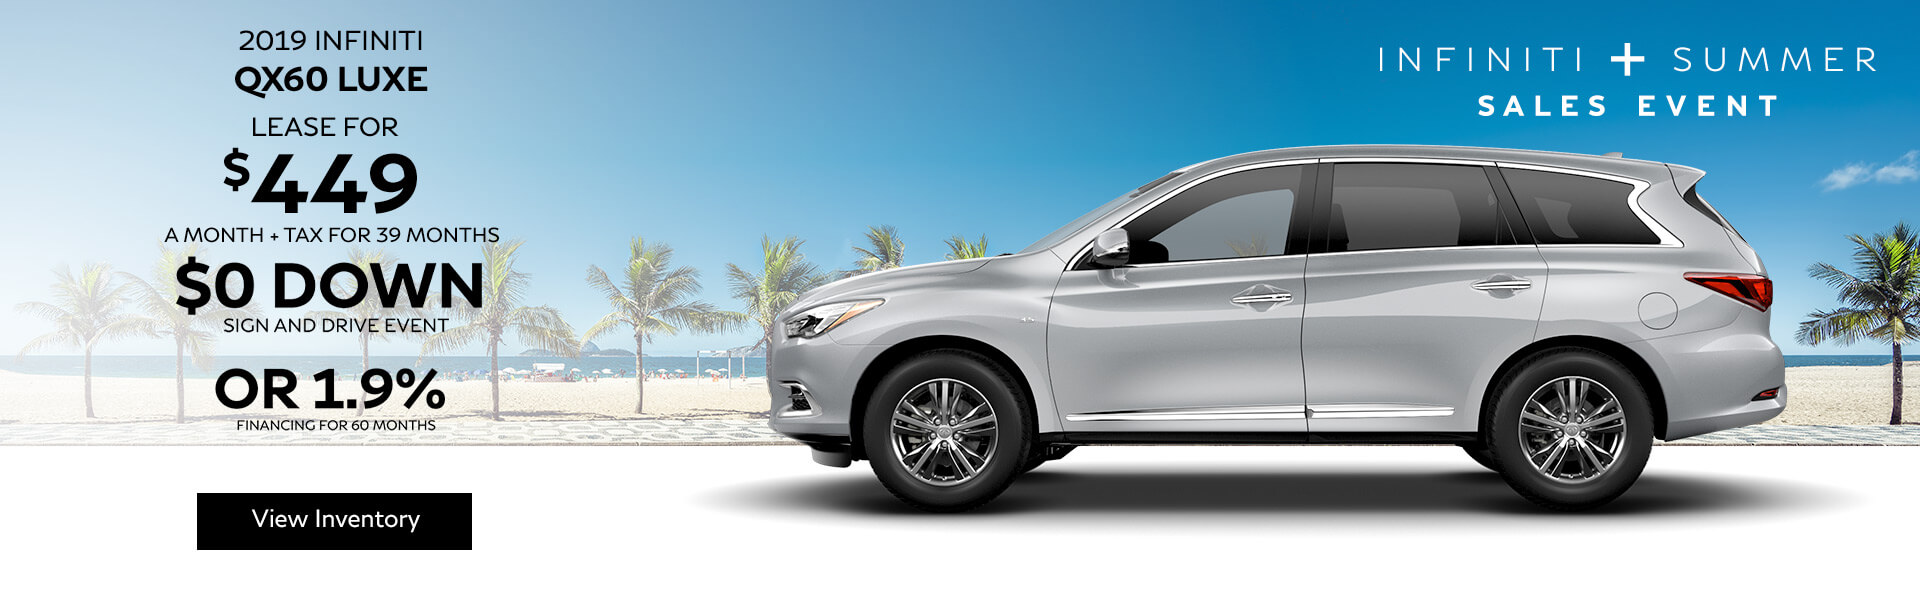 QX60 LUXE - Lease for $449